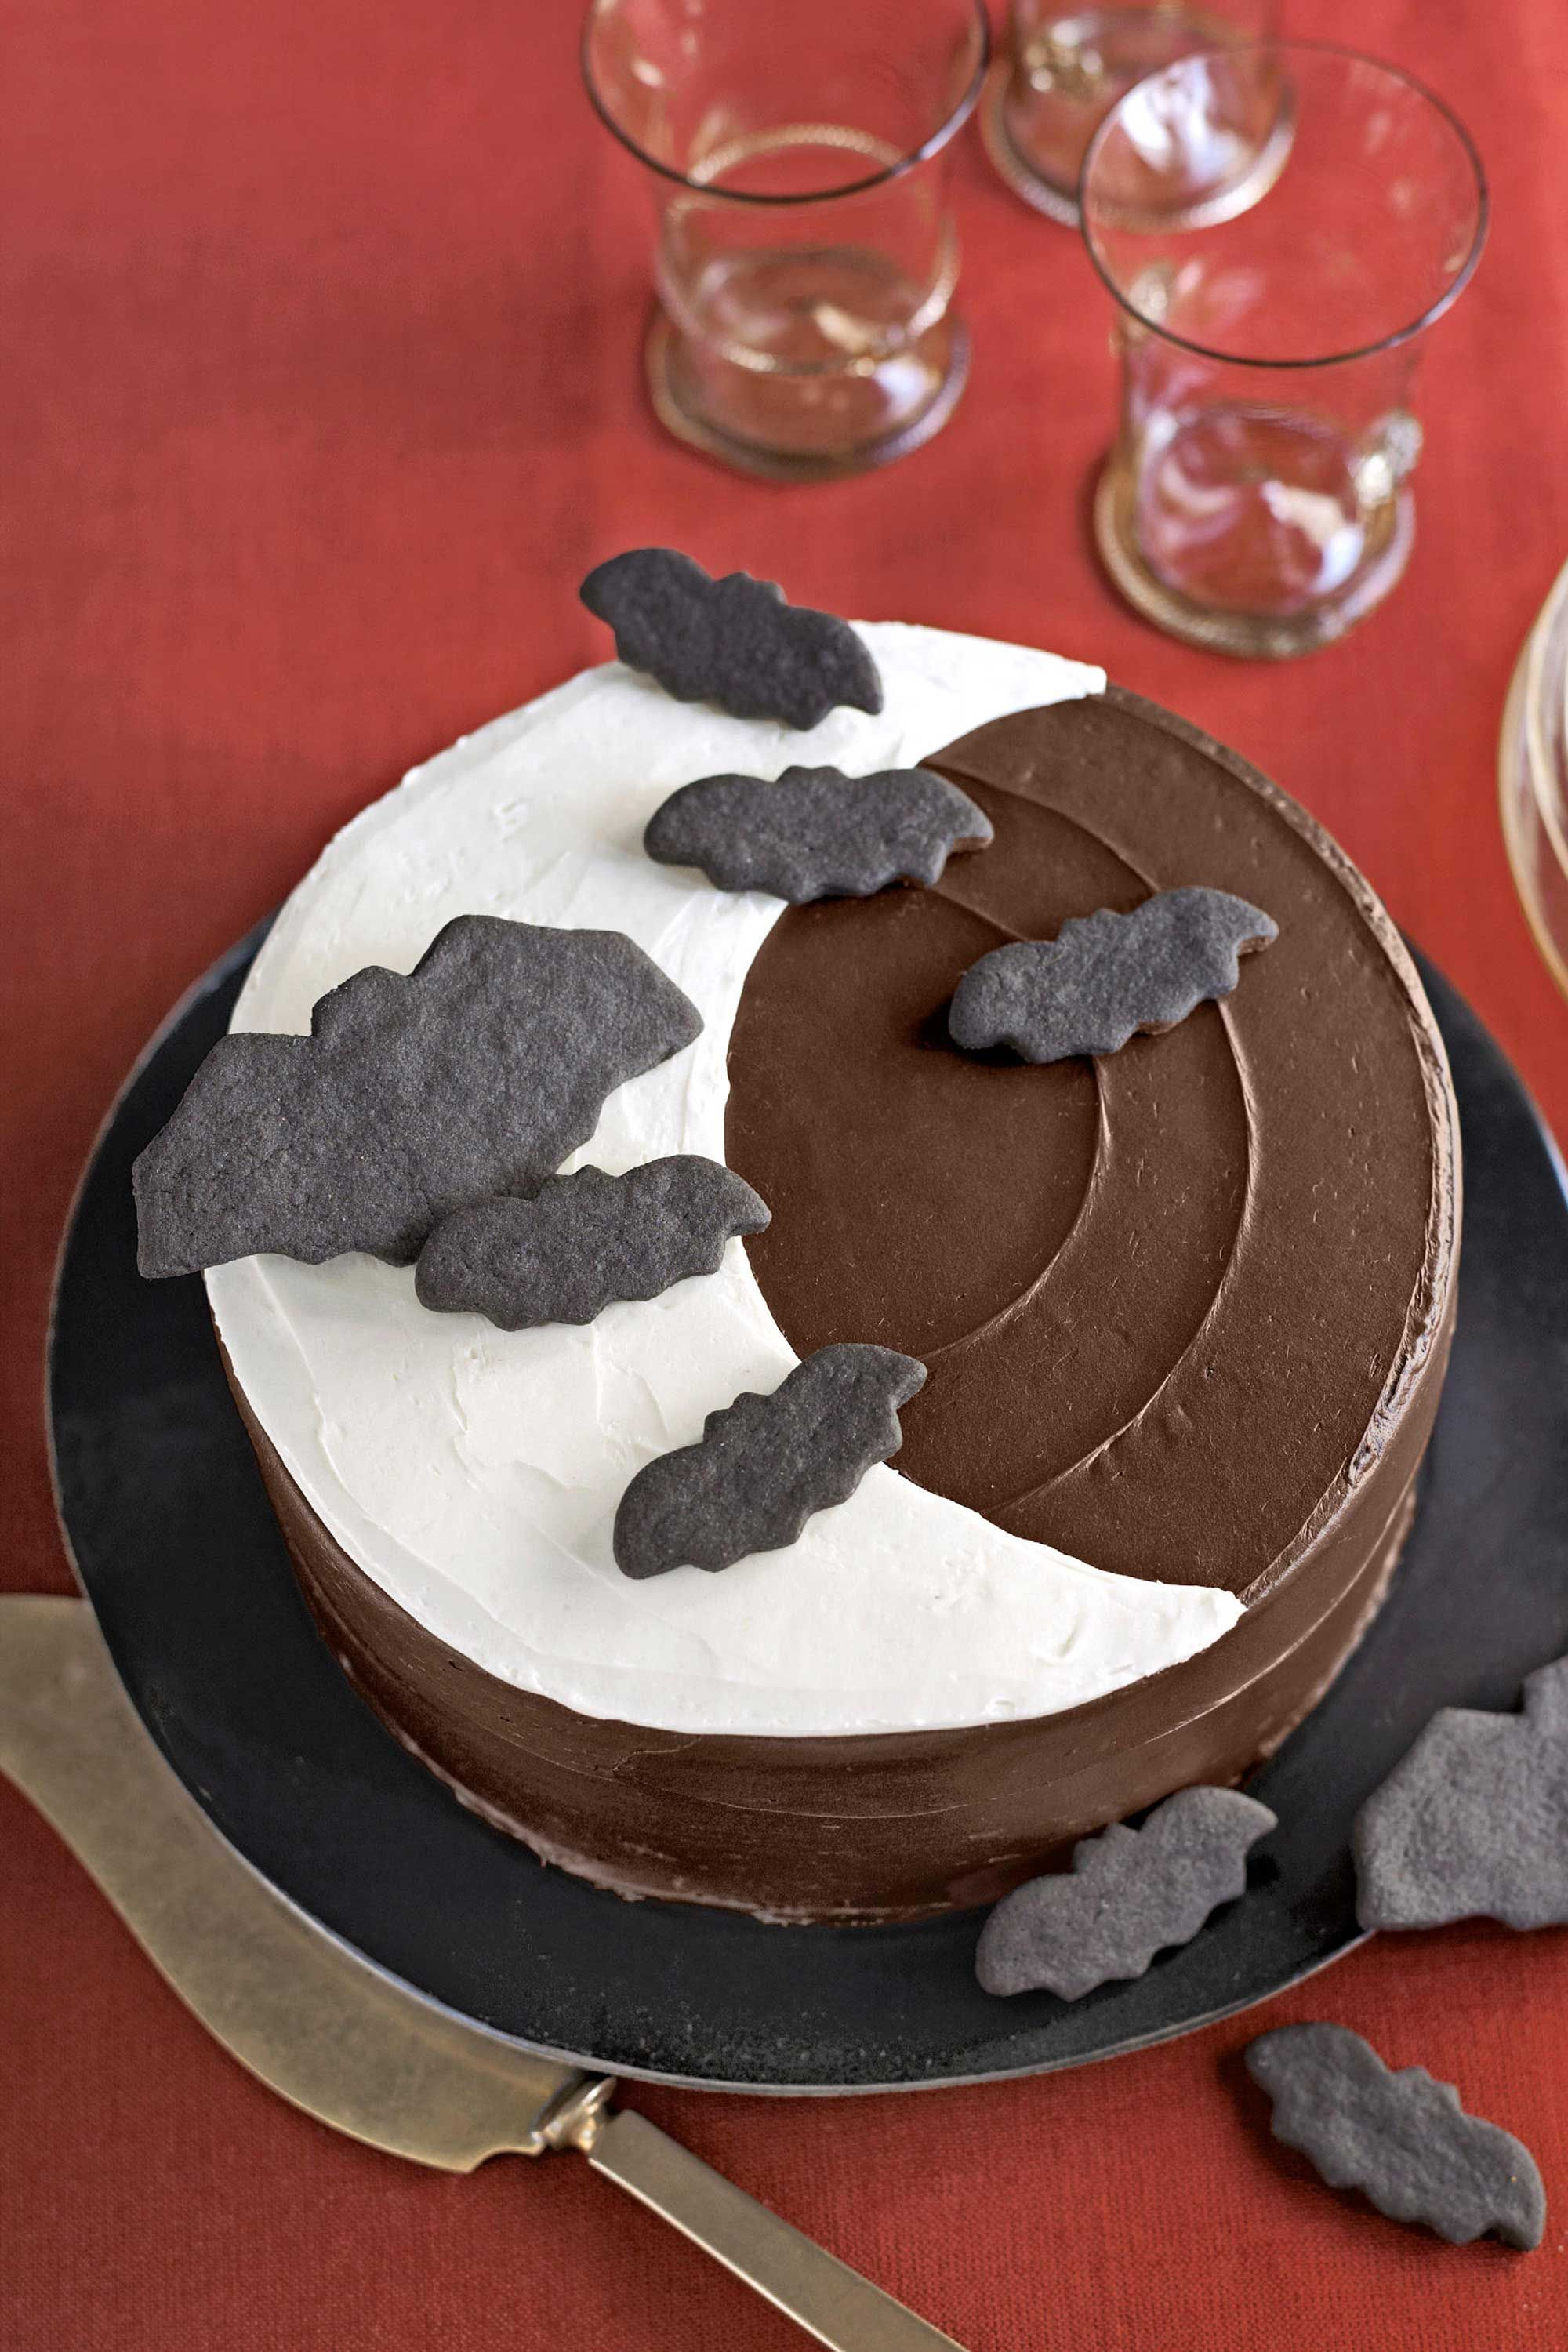 Chocolate cake with white topping scene two